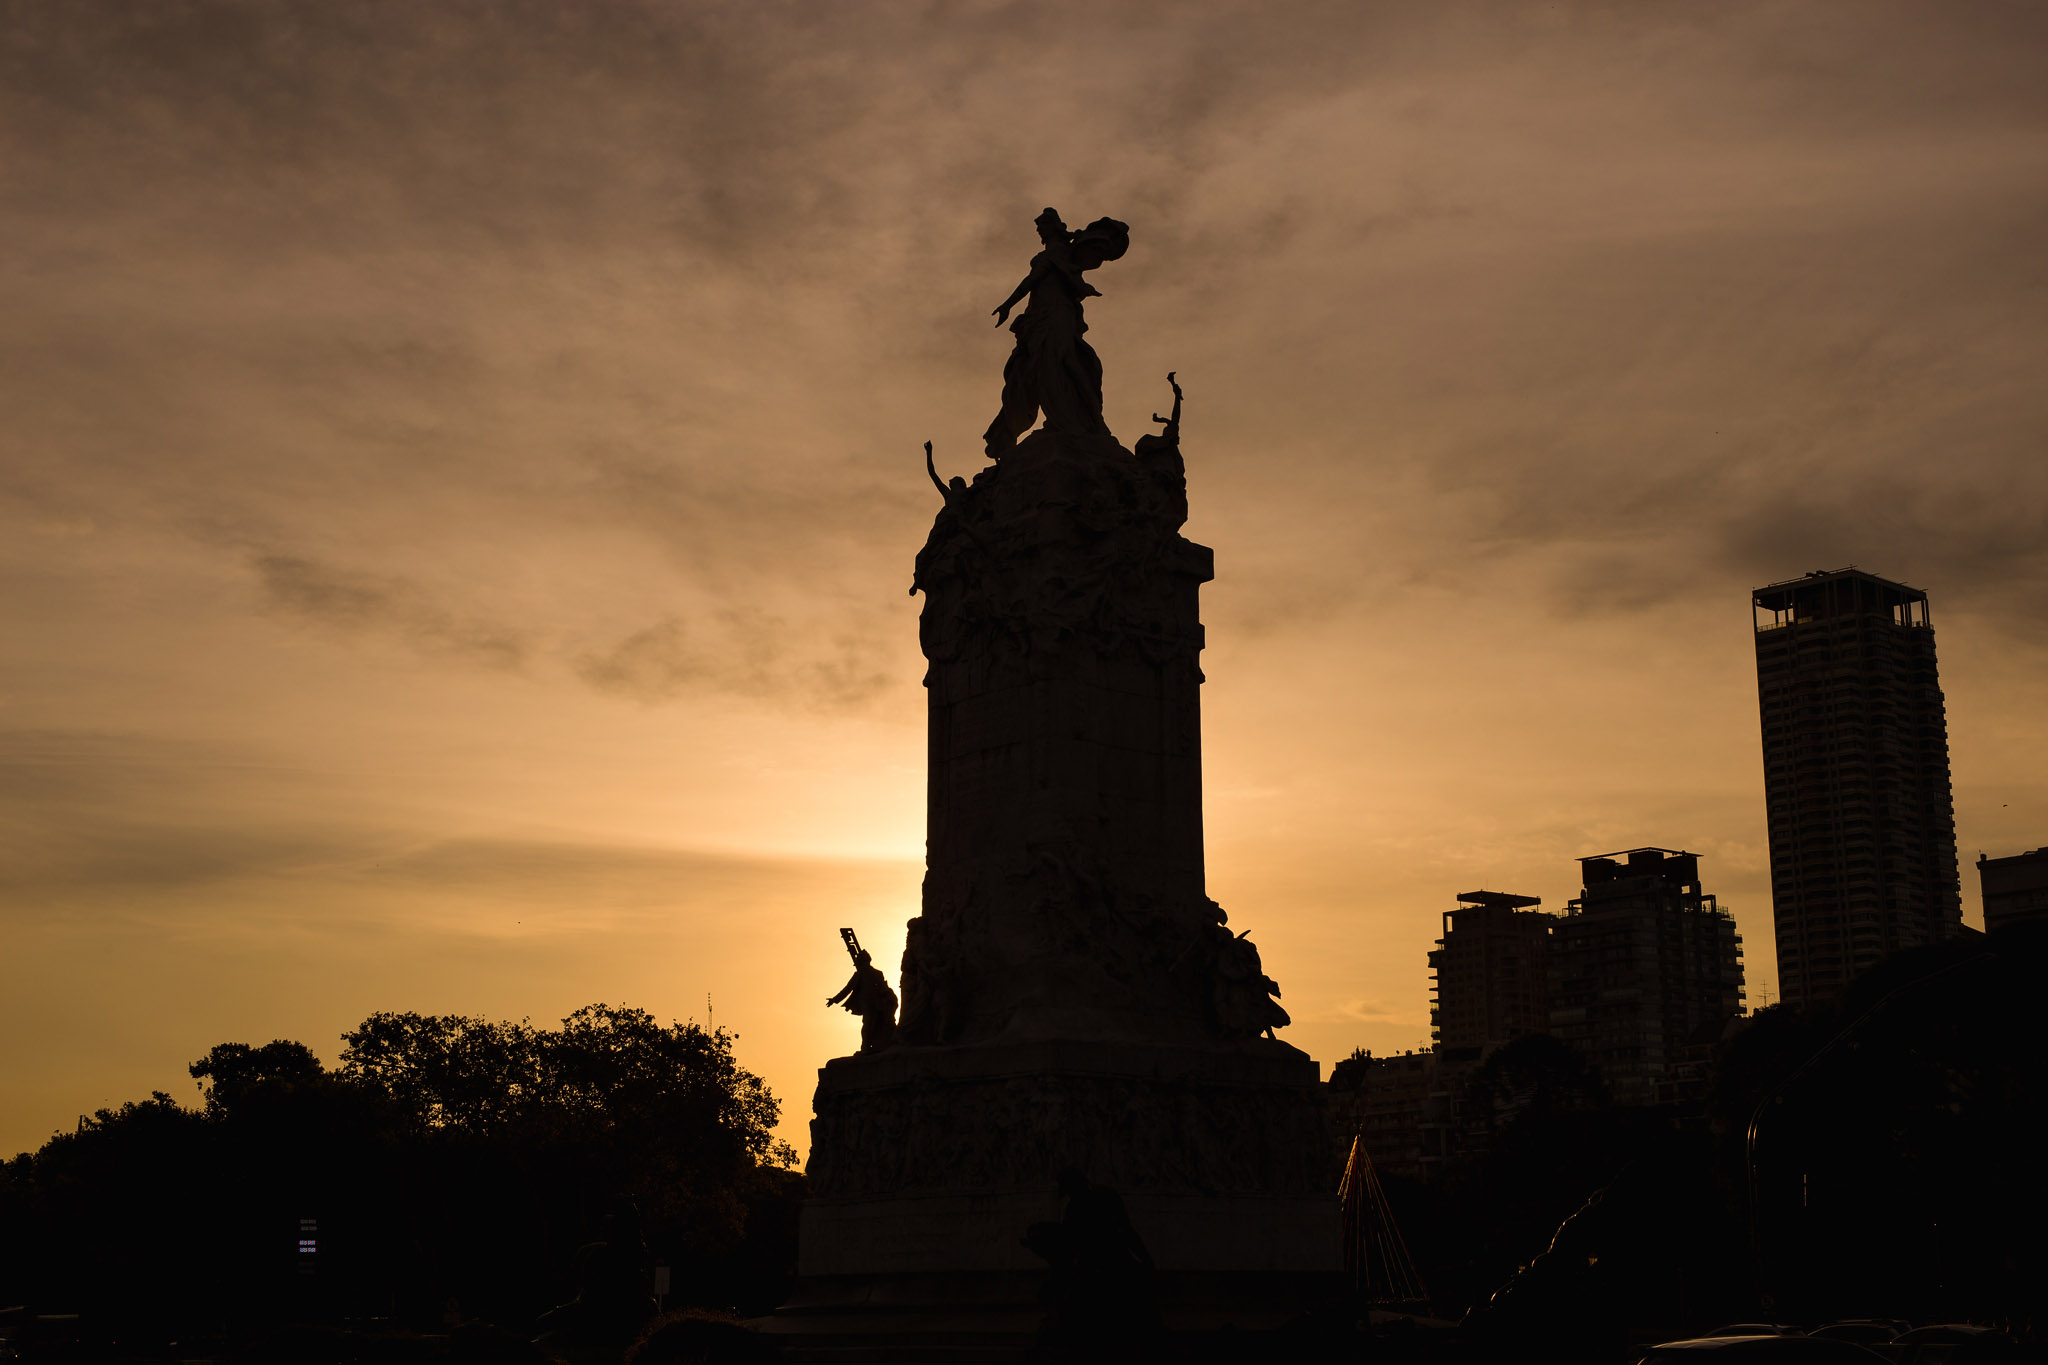 Wedding-travellers-Argentina-Buenos-Aires-Palermo-monument-to-spain